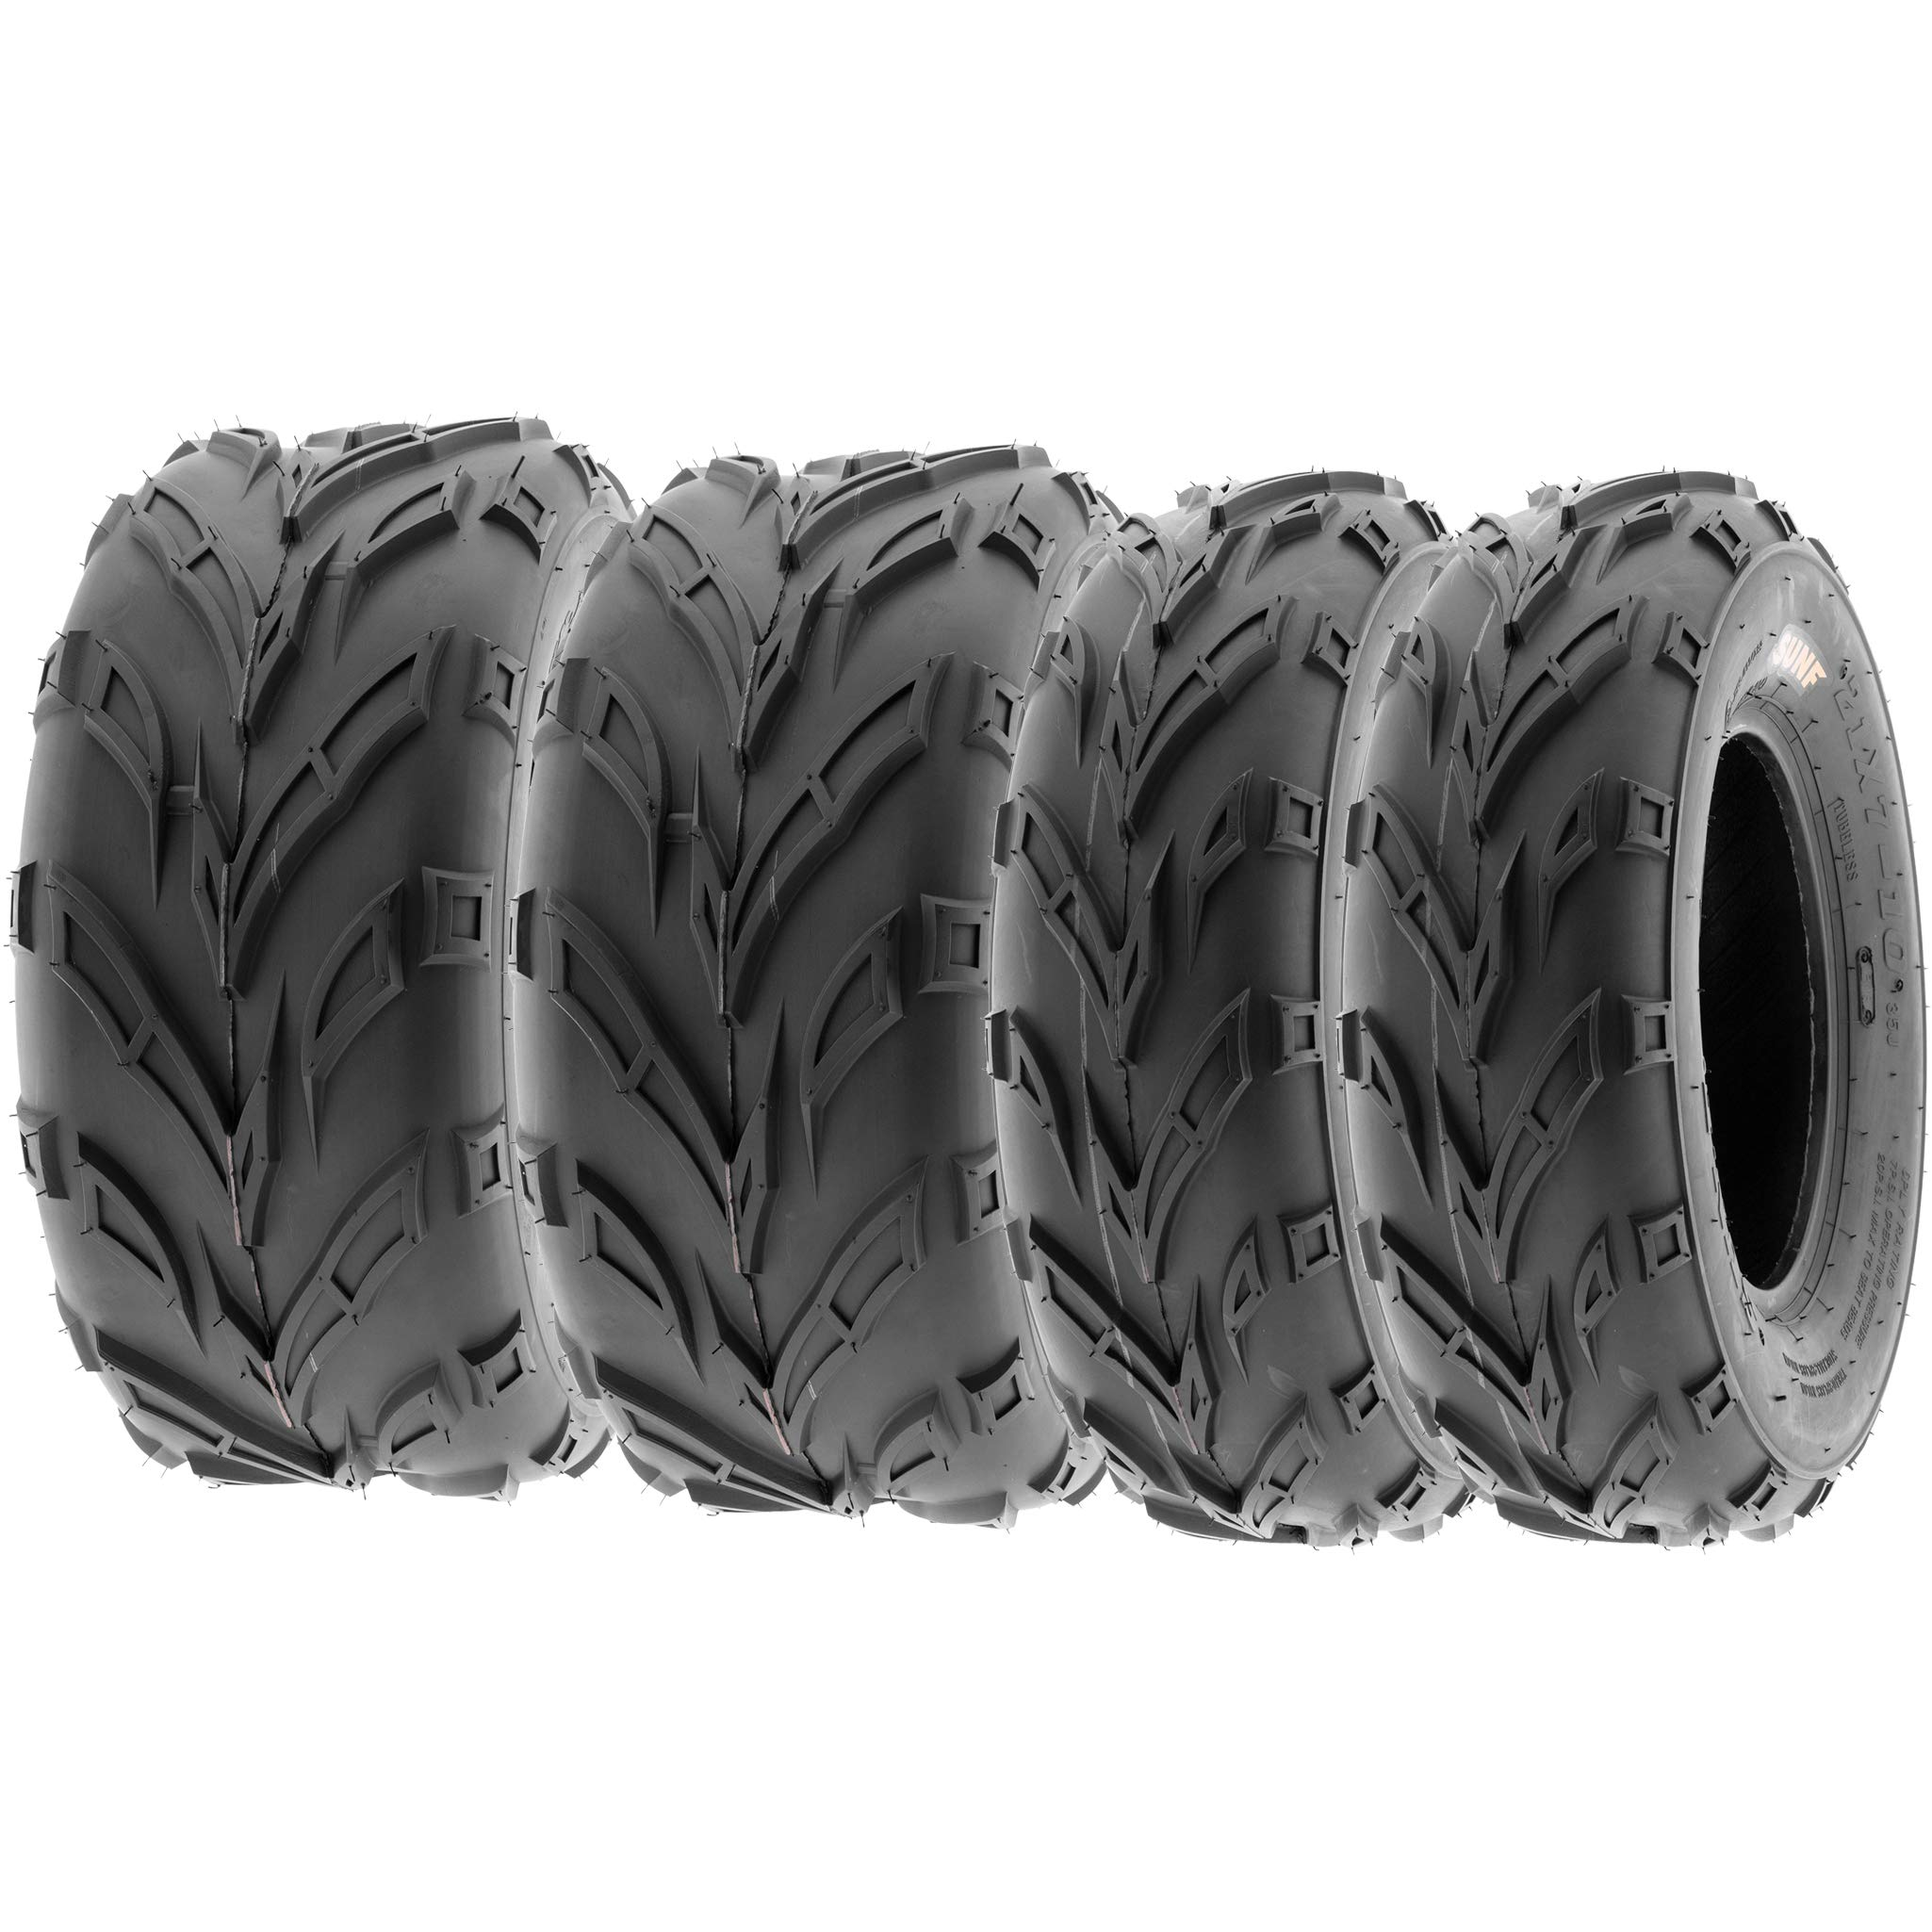 SunF All Terrain Trail Sport ATV UTV 6 Ply Tires 19x7-8 & 22x10-10 Tubeless A004, [Set of 4] by SUNF